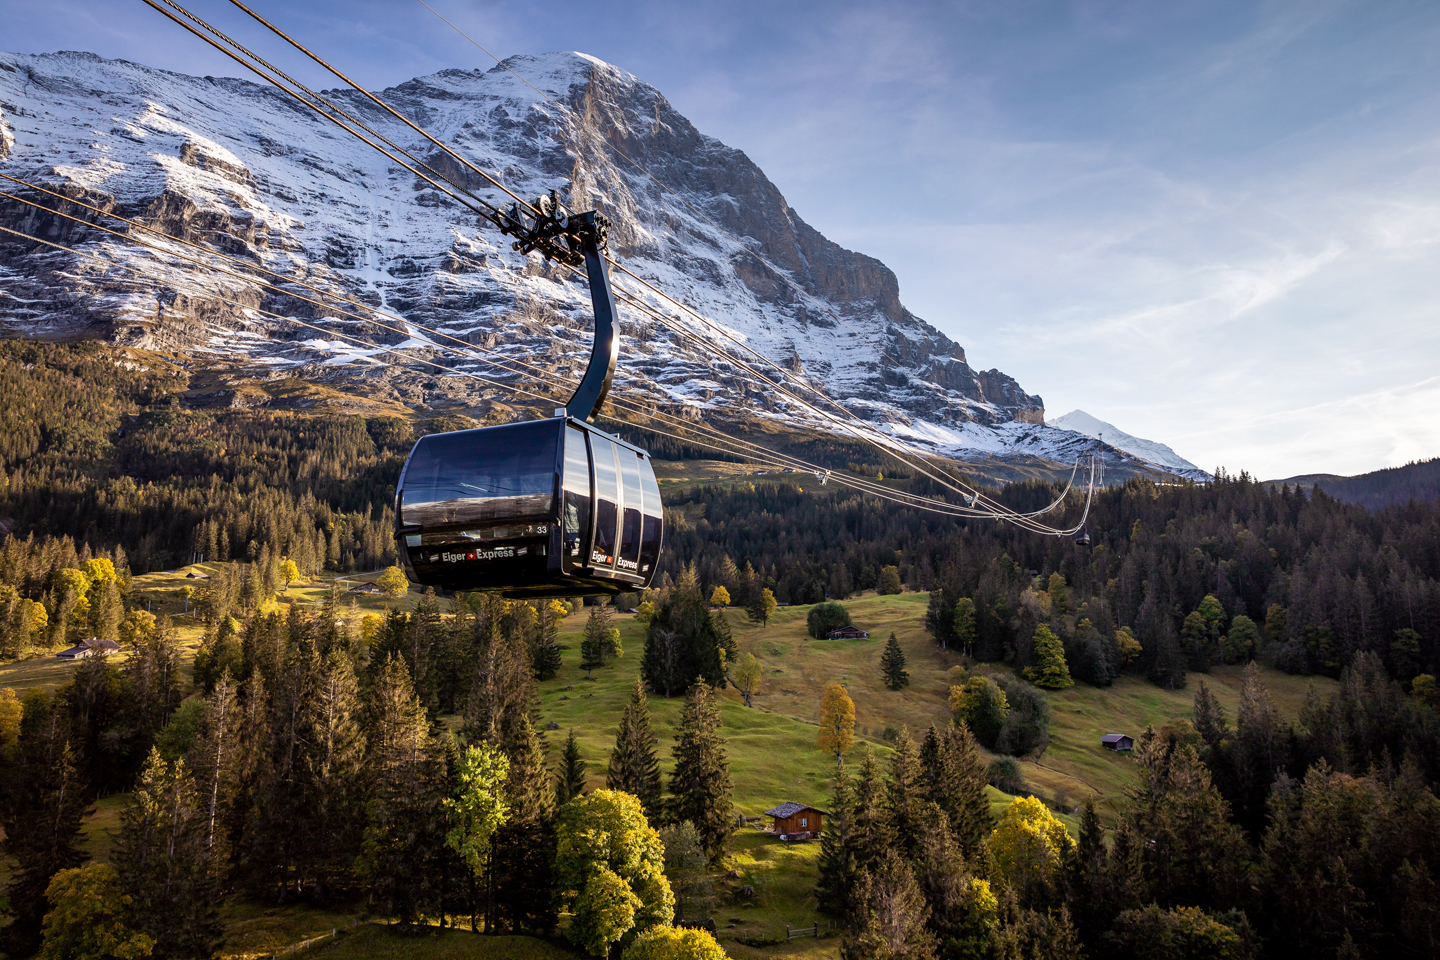 The newly opened Eiger Express underneath the impressive Eiger North Face